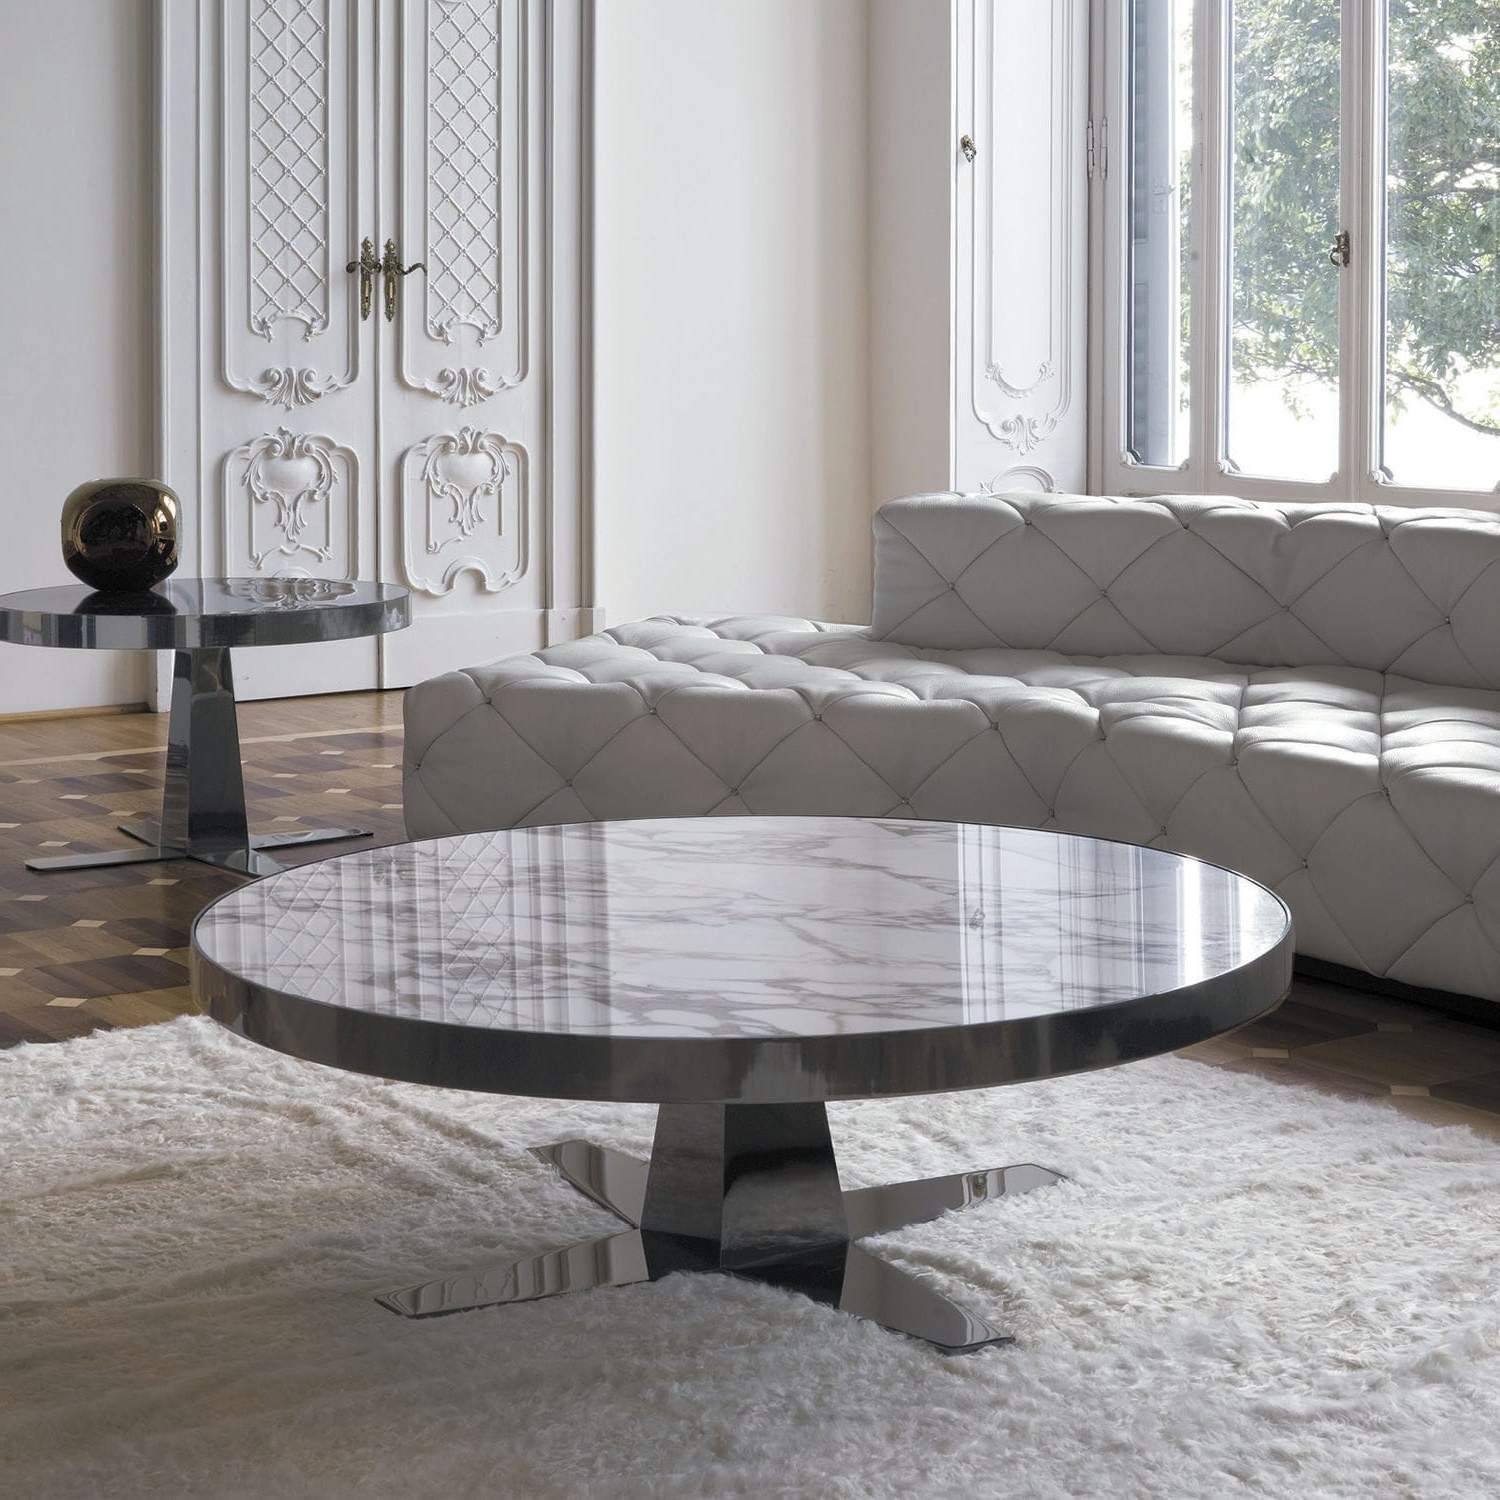 Smart Round Marble Top Coffee Tables Inside Most Up To Date Coffee Table: Smart Round Marble Coffee Table At Your Room Ideas (Gallery 19 of 20)